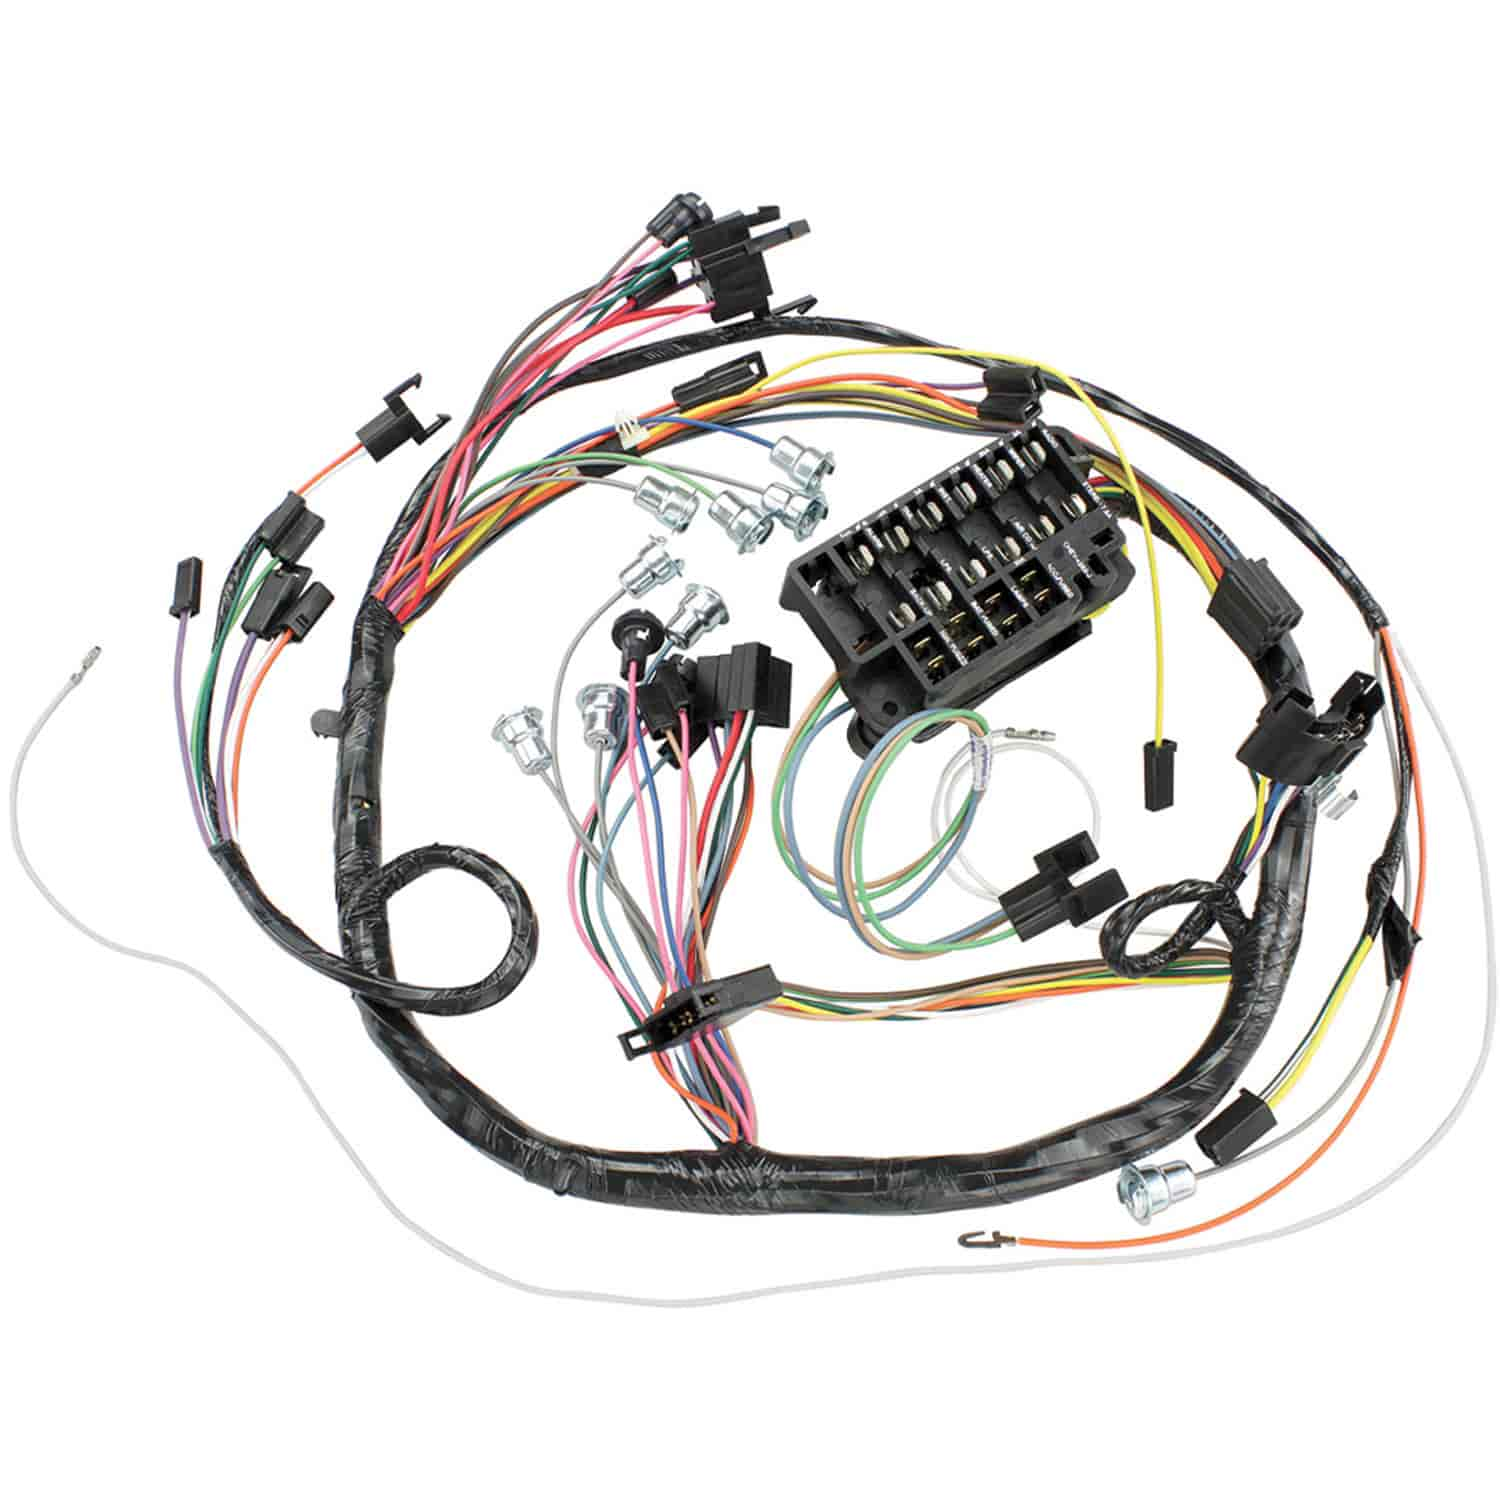 hight resolution of restoparts wiring harness dash 1966 chevelle el camino console c a c